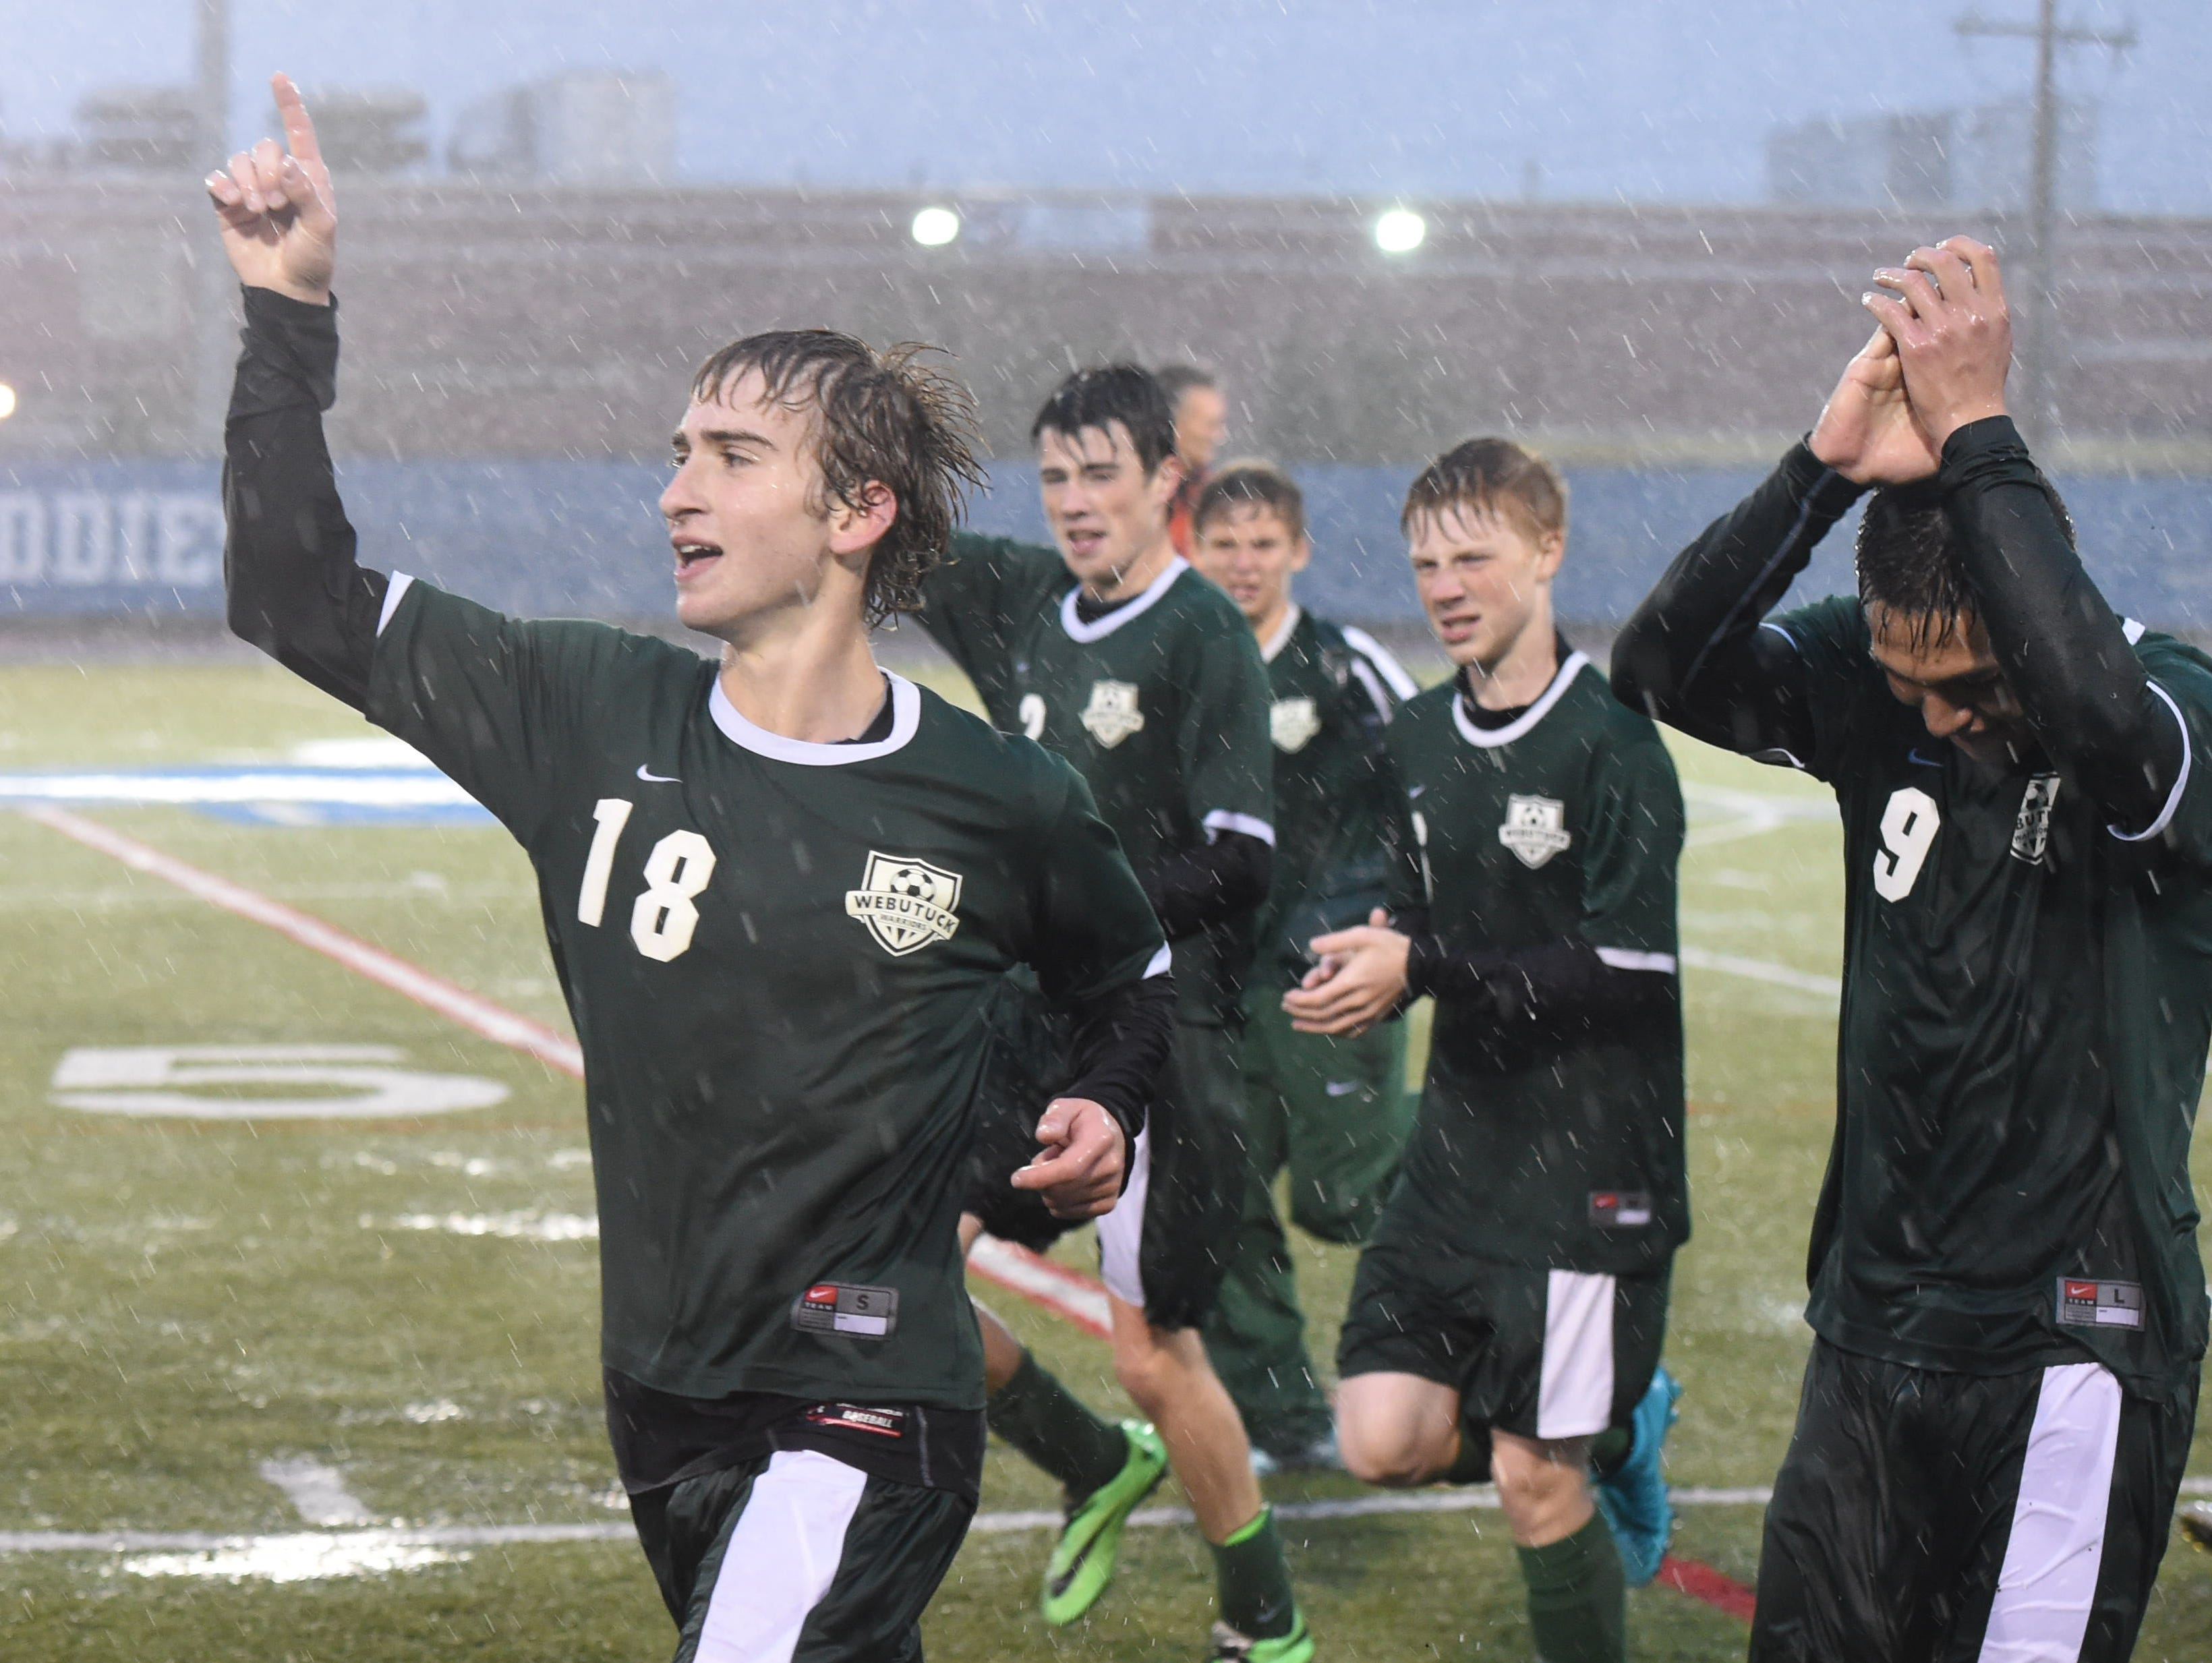 Webutuck's Chris Miloneo leads his teammates in celebrating their win over Millbrook for the Section 9 Class C boys soccer championship in October 2015.